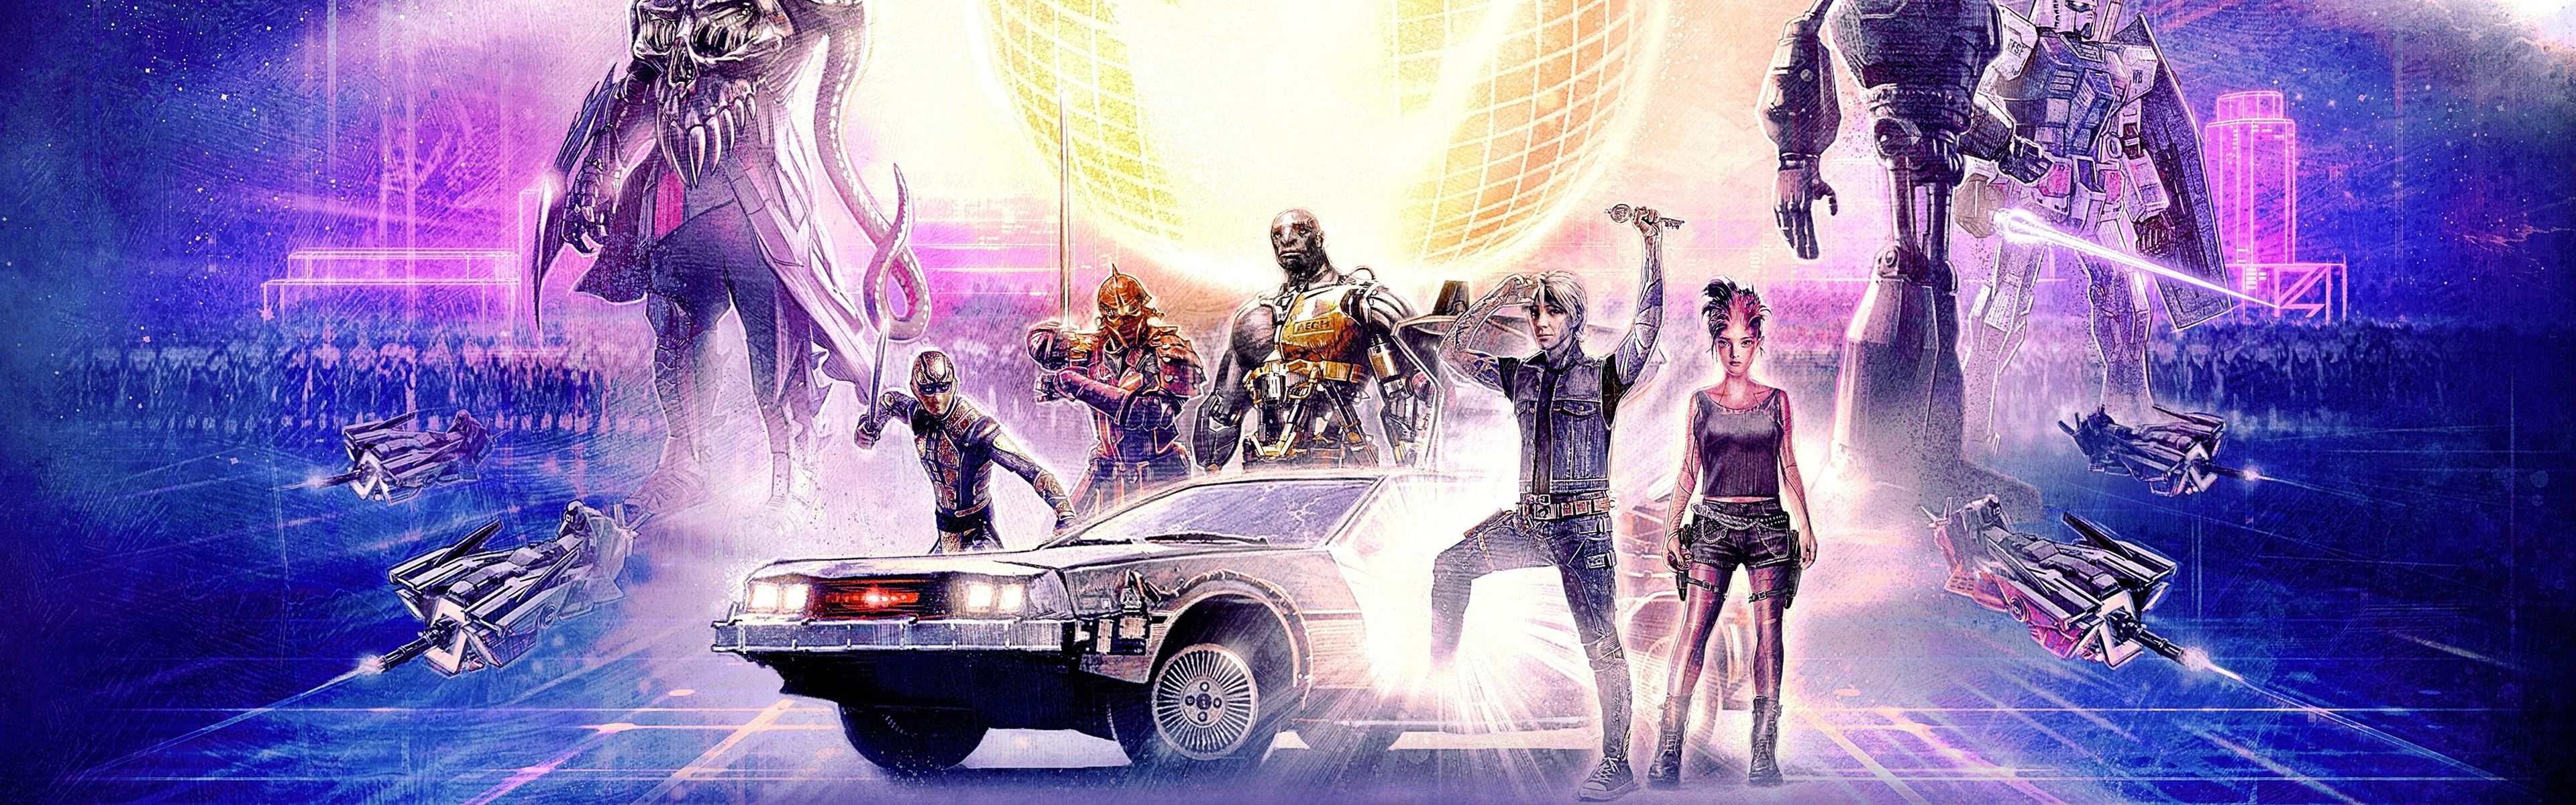 Ready Player One Wallpapers Top Free Ready Player One